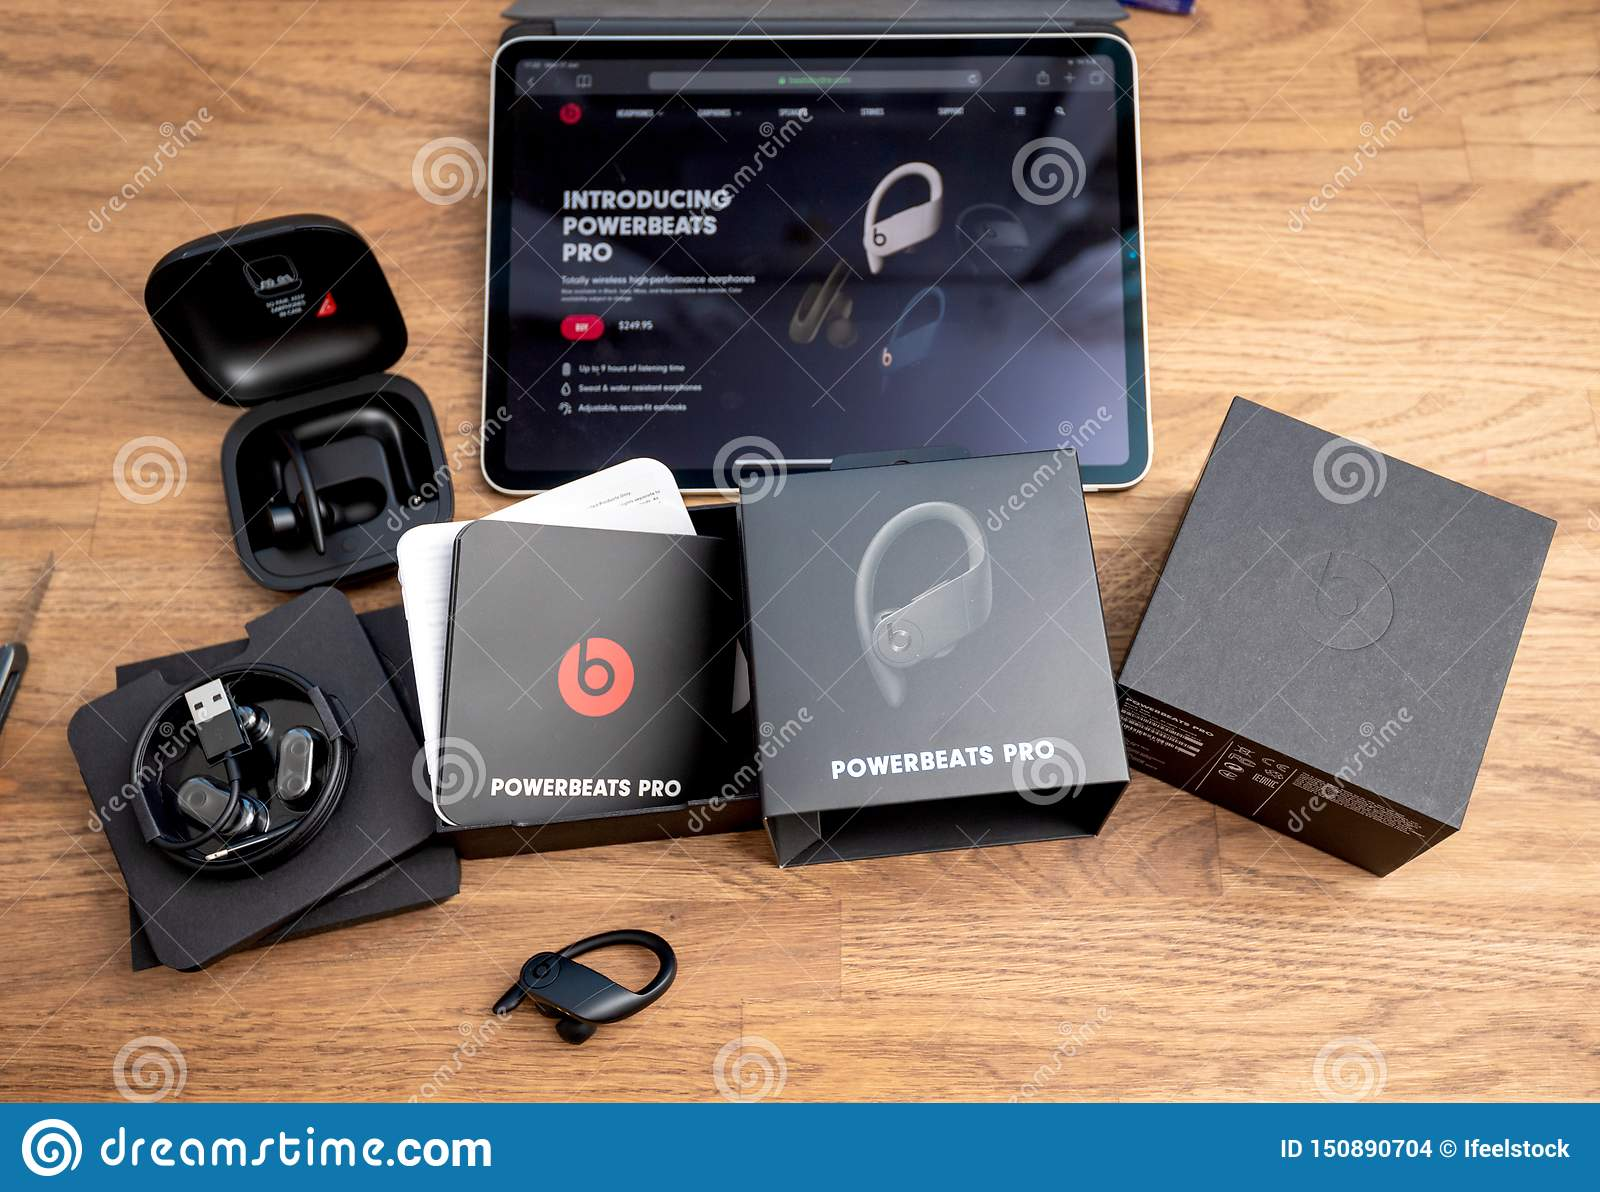 unboxing of powerbeats pro